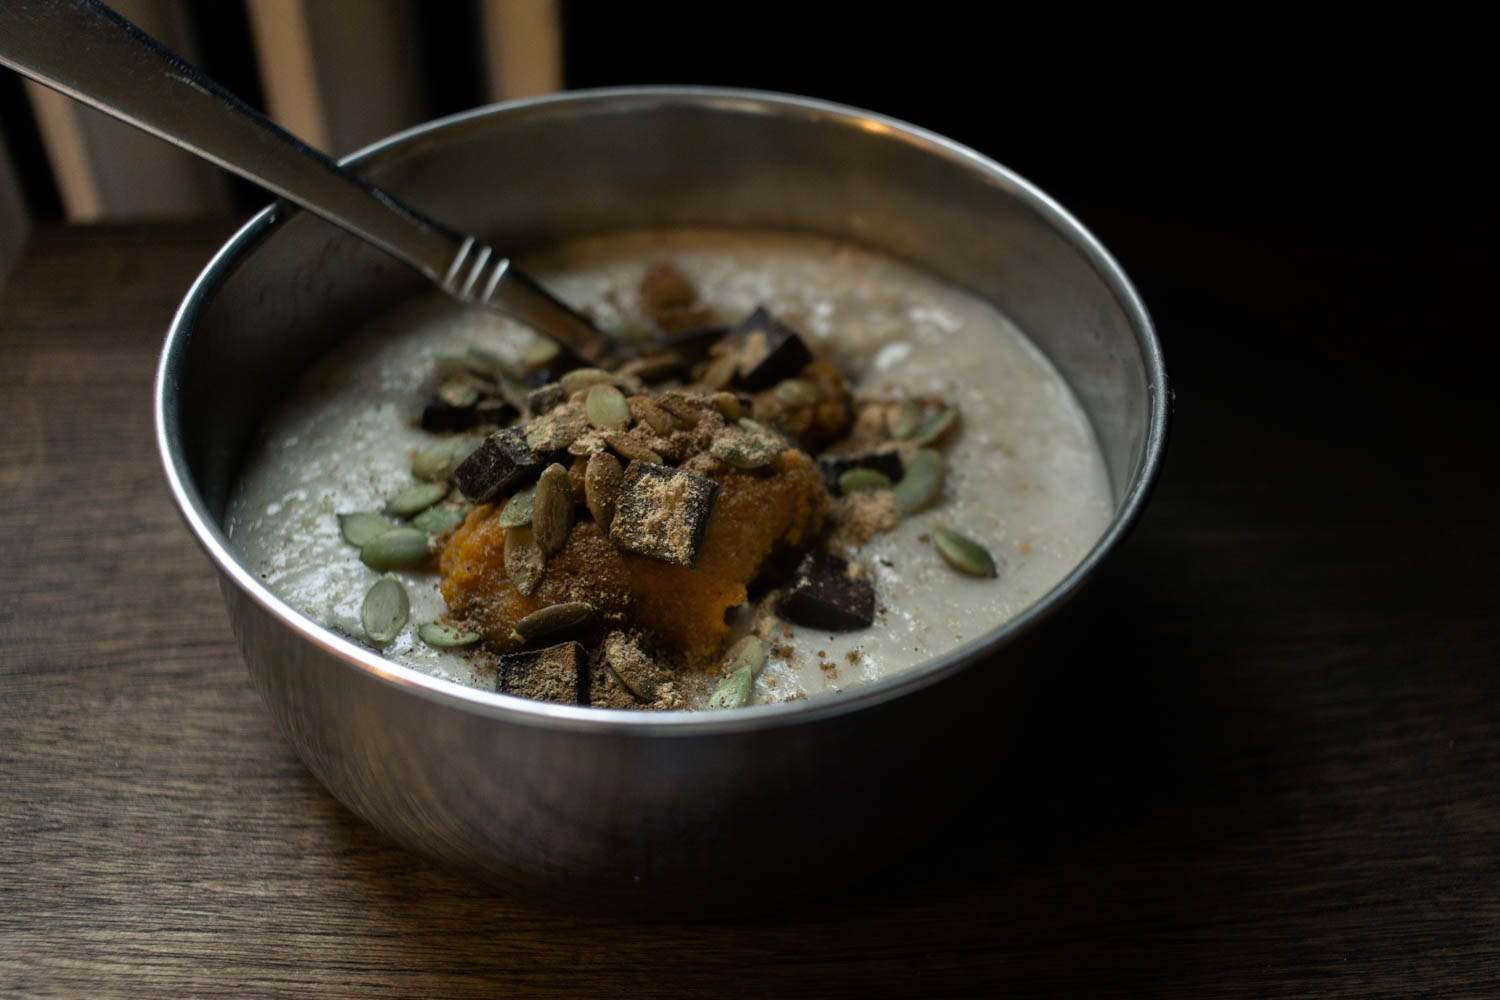 Steel-cut oats with pumpkin, spices and chocolate in a metal bowl